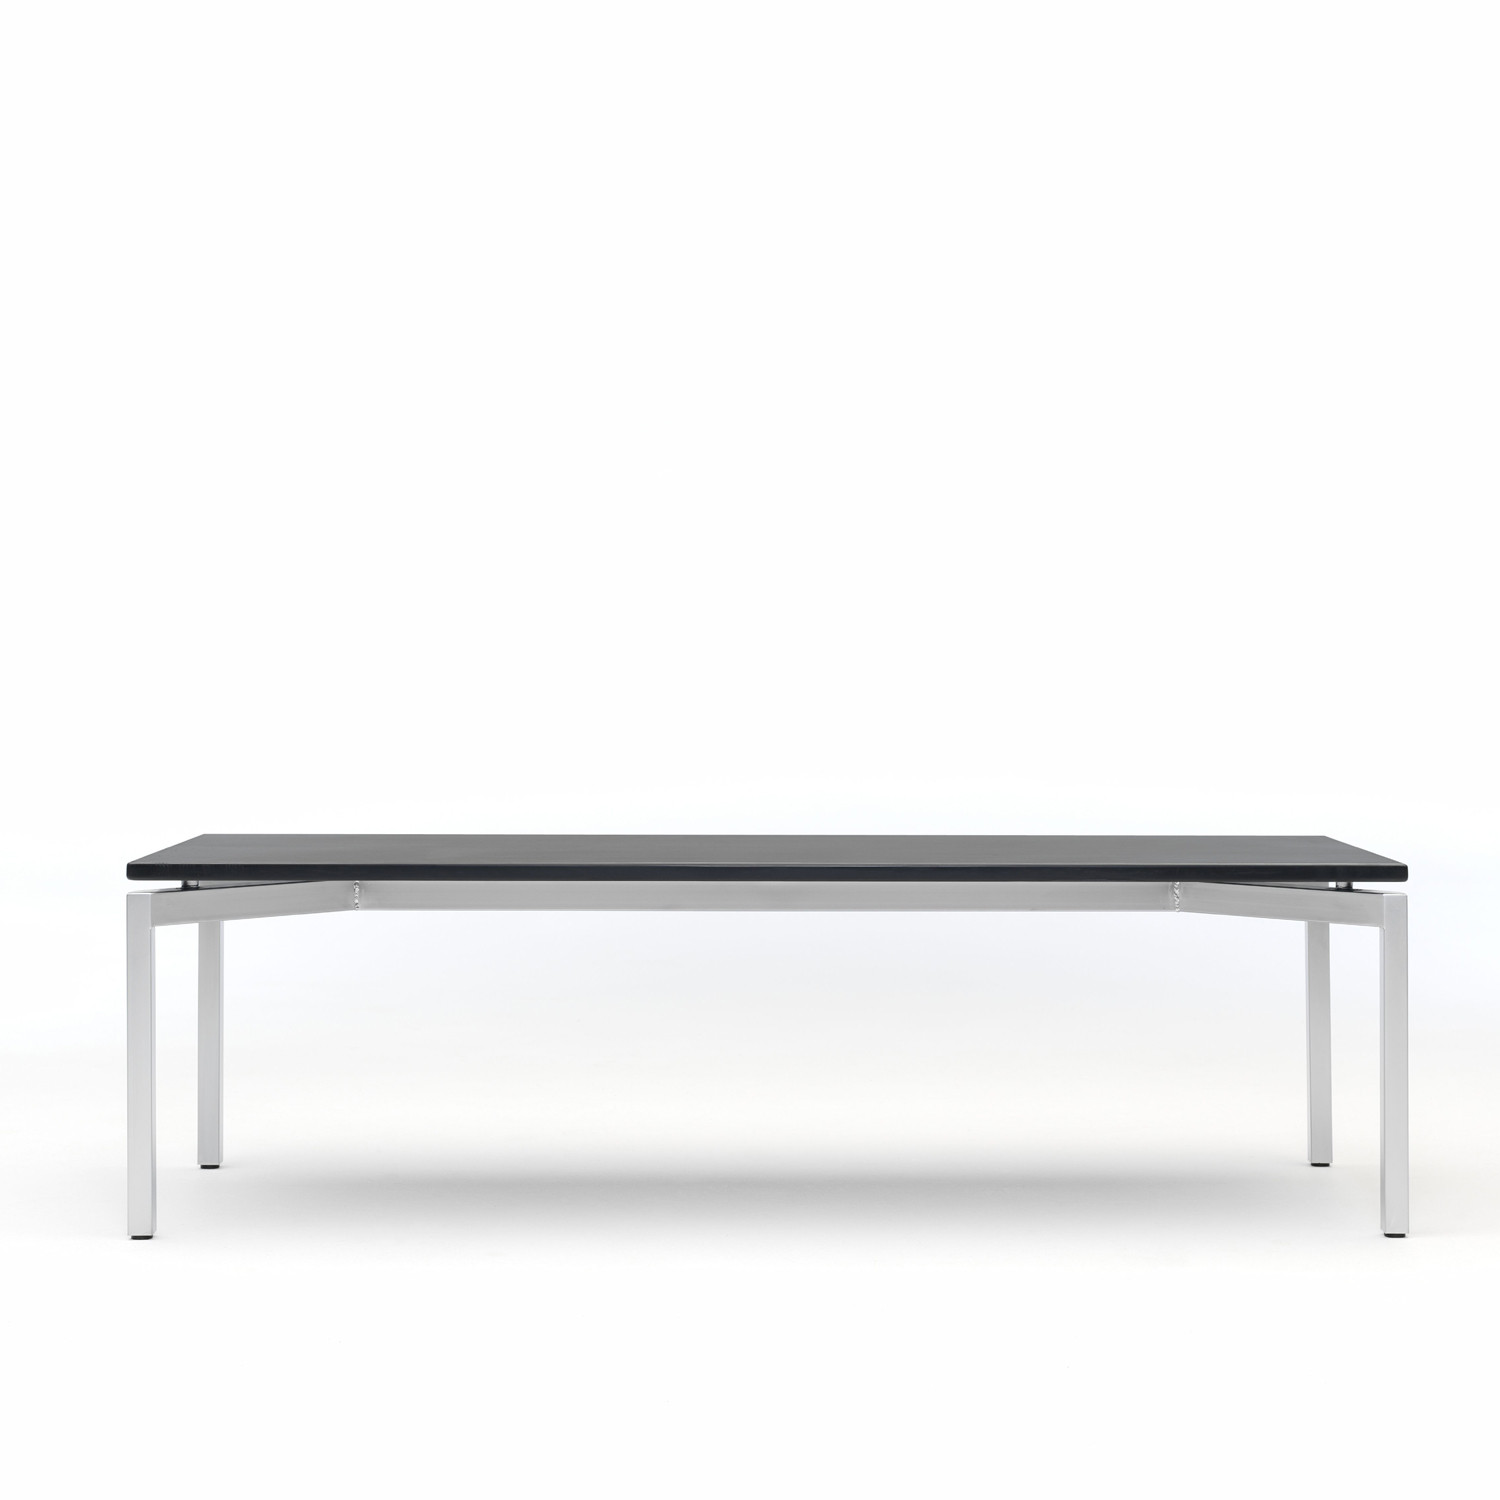 EJ 65-66 Office Coffee Table